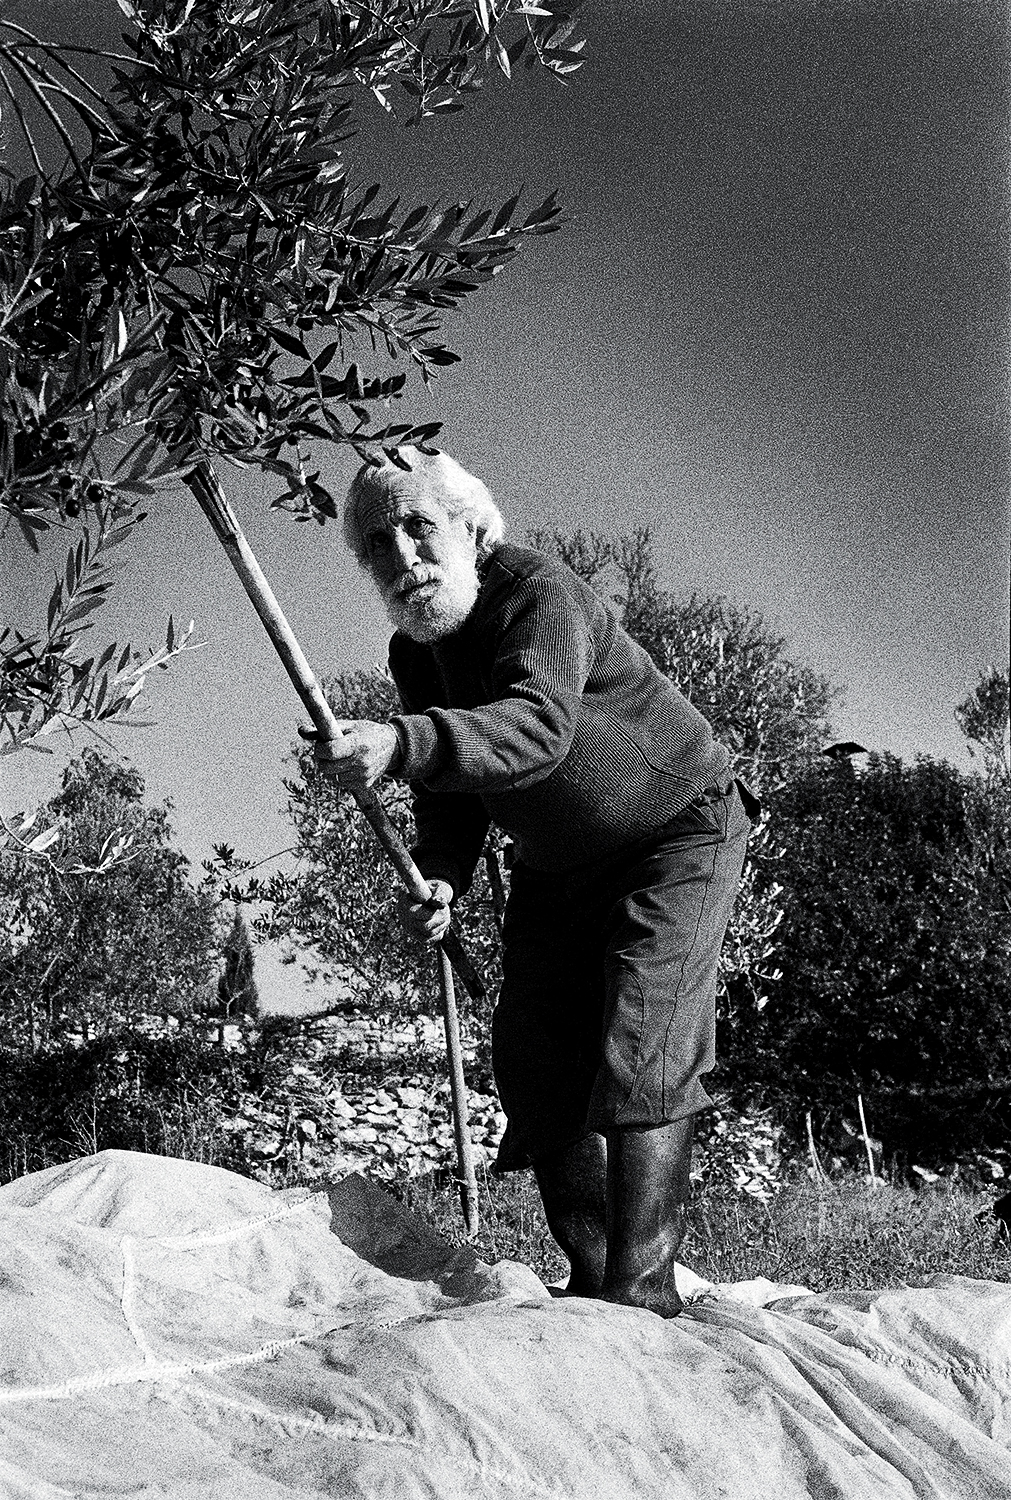 B&W olive picker2_v3.jpg